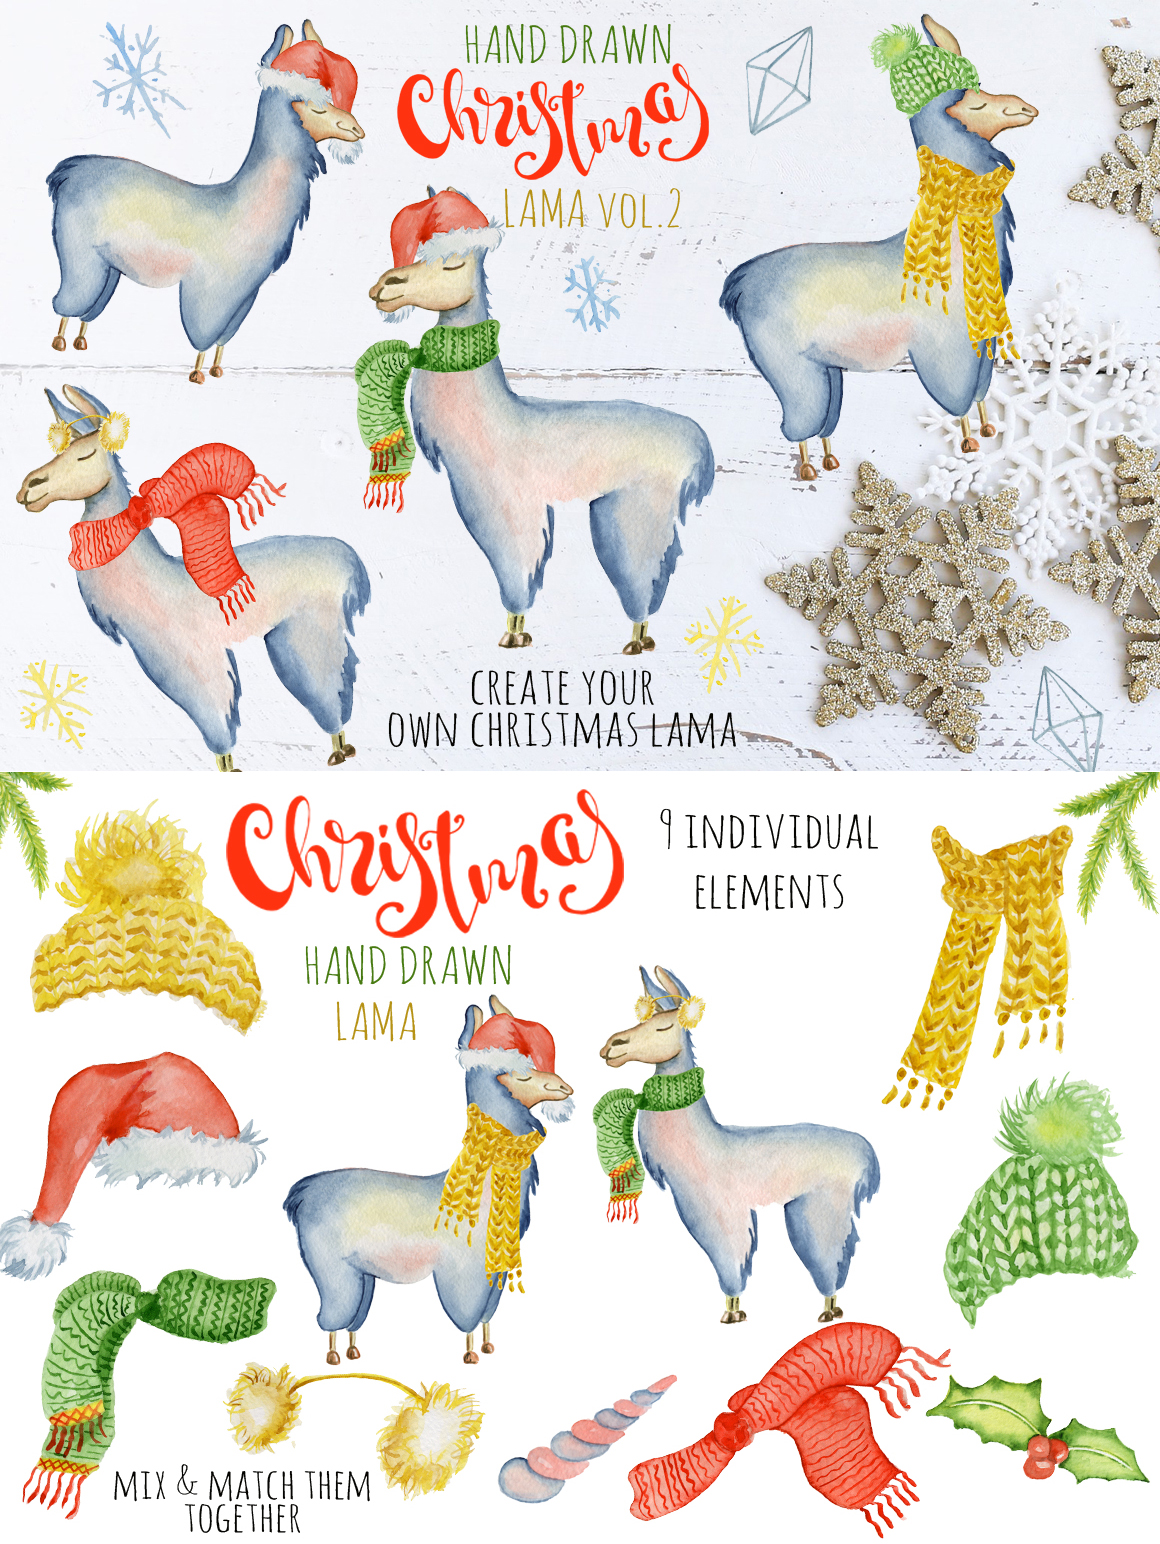 Magical Winter Clipart: 14 Christmas Watercolor Clipart Bundles in 1 - $28 - 10 Lama2